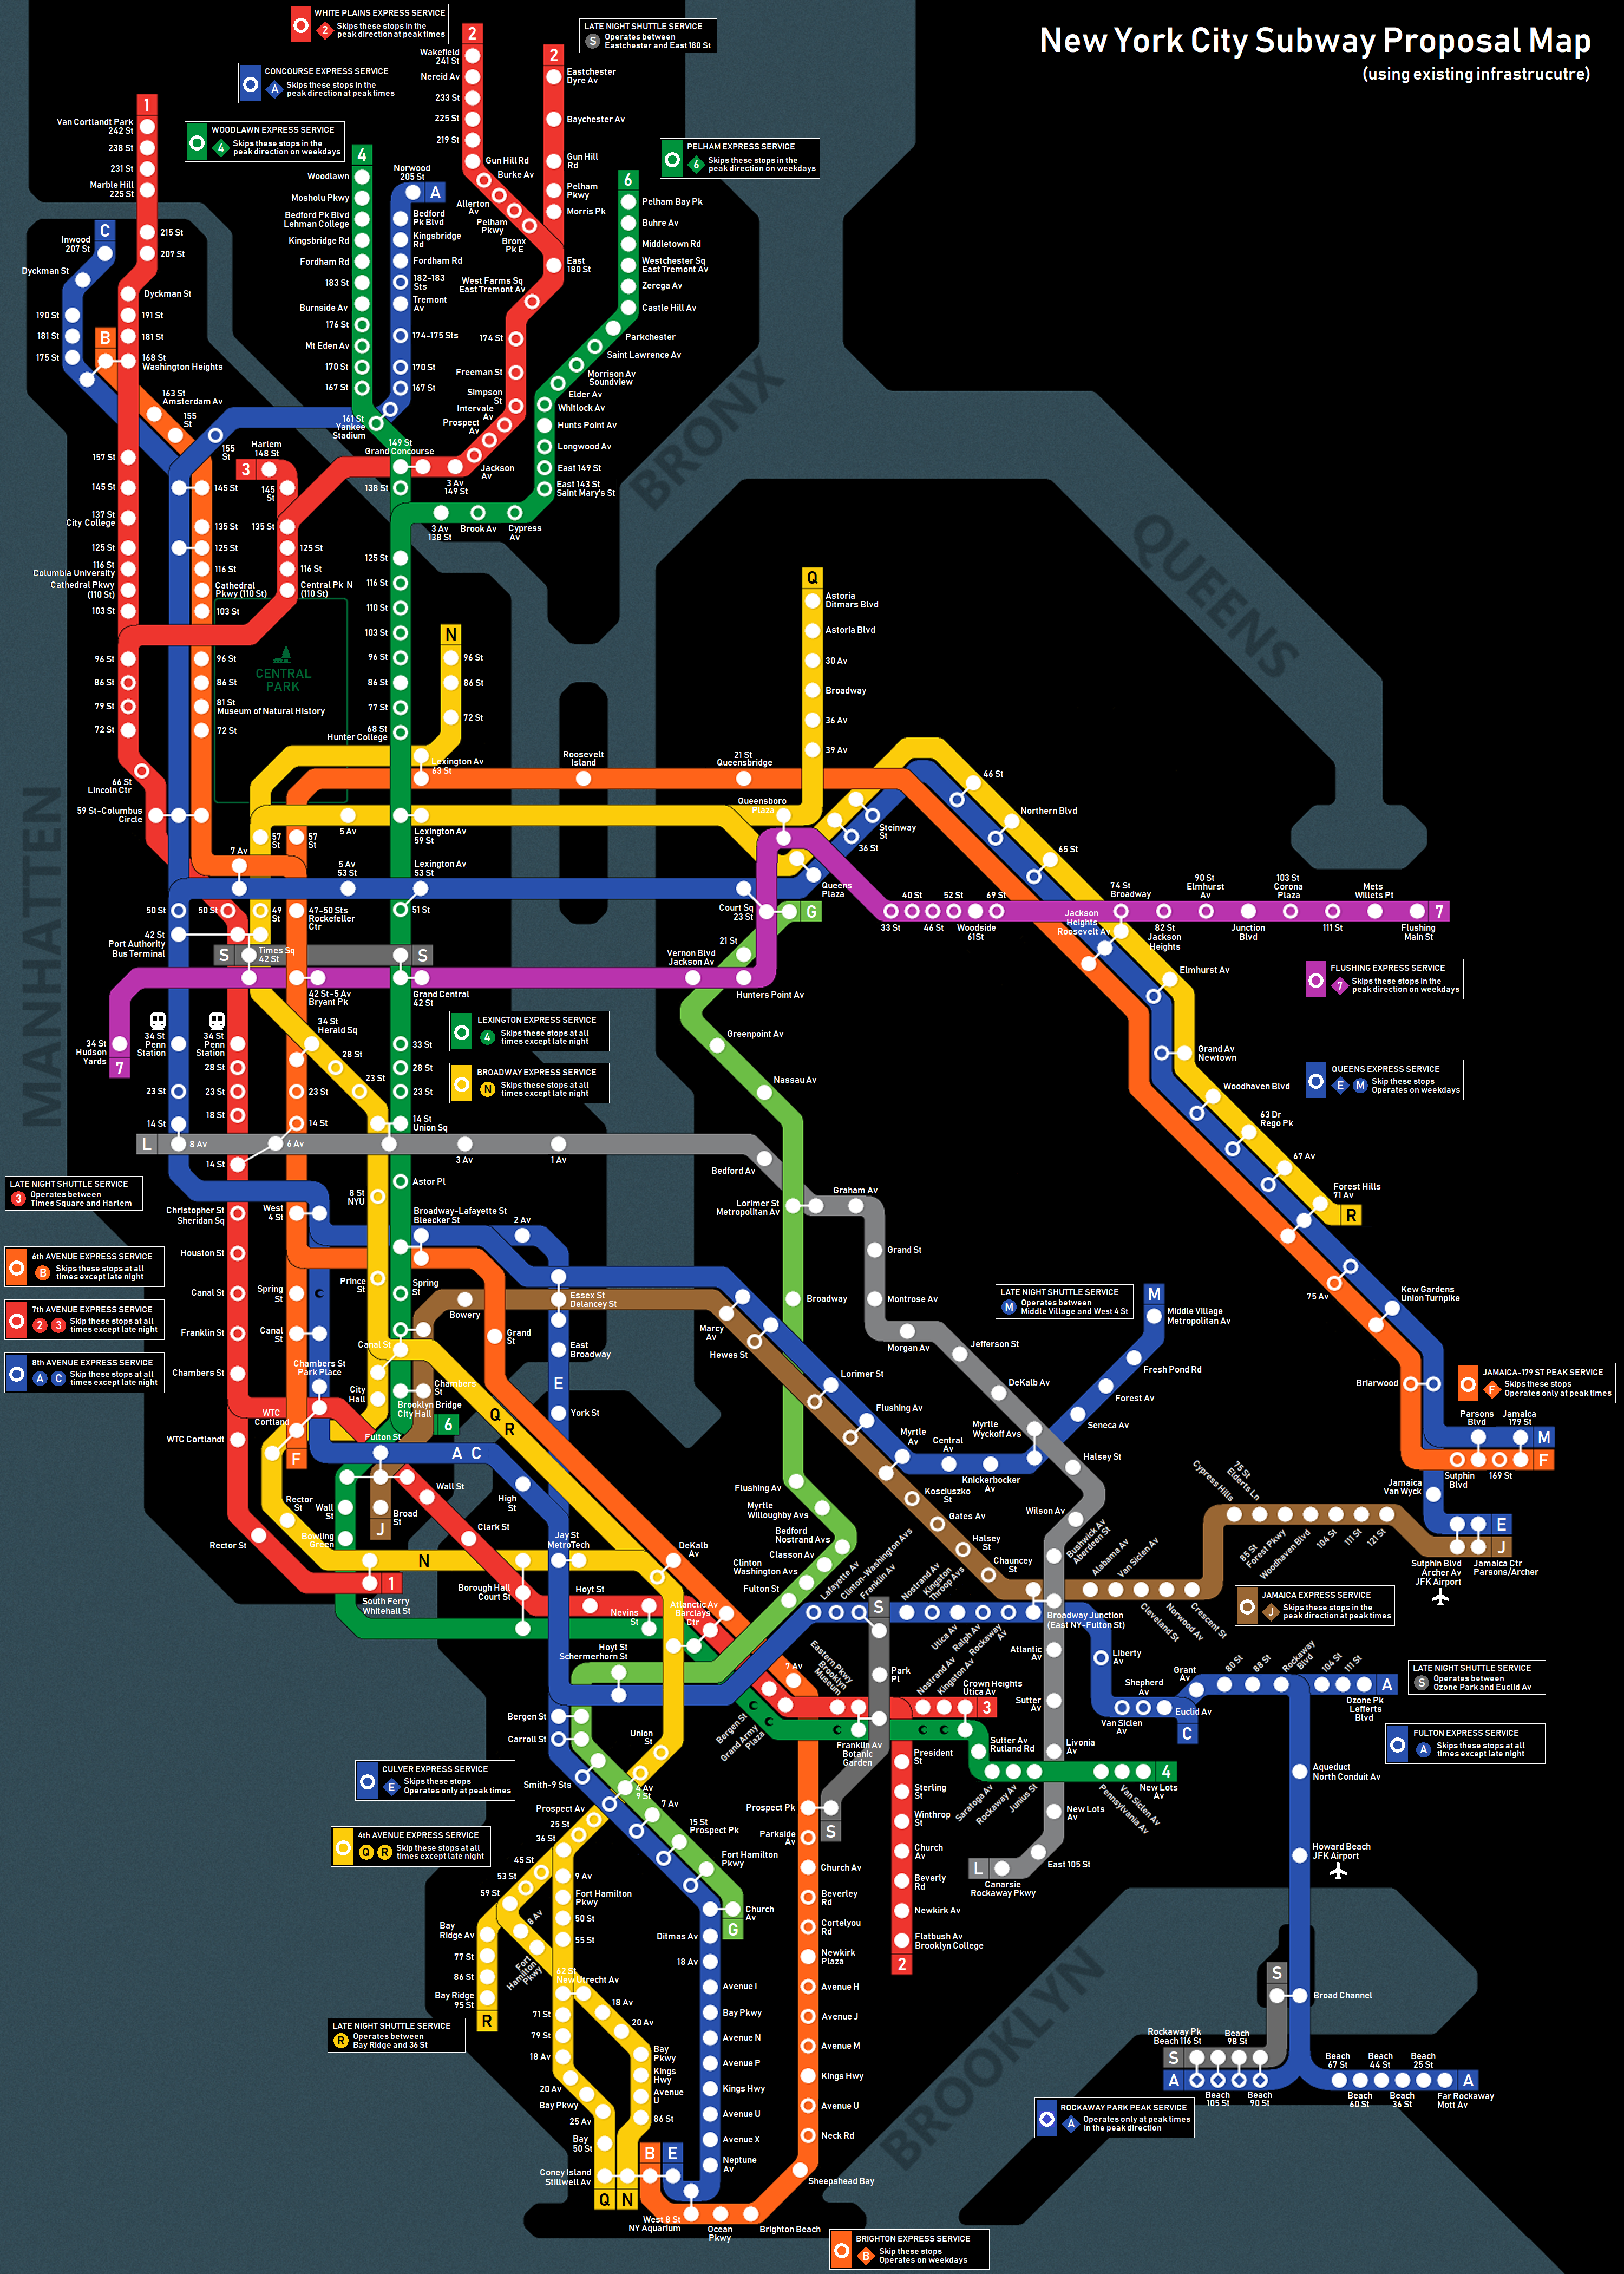 Subway Proposal Map Using Existing Infrastructure